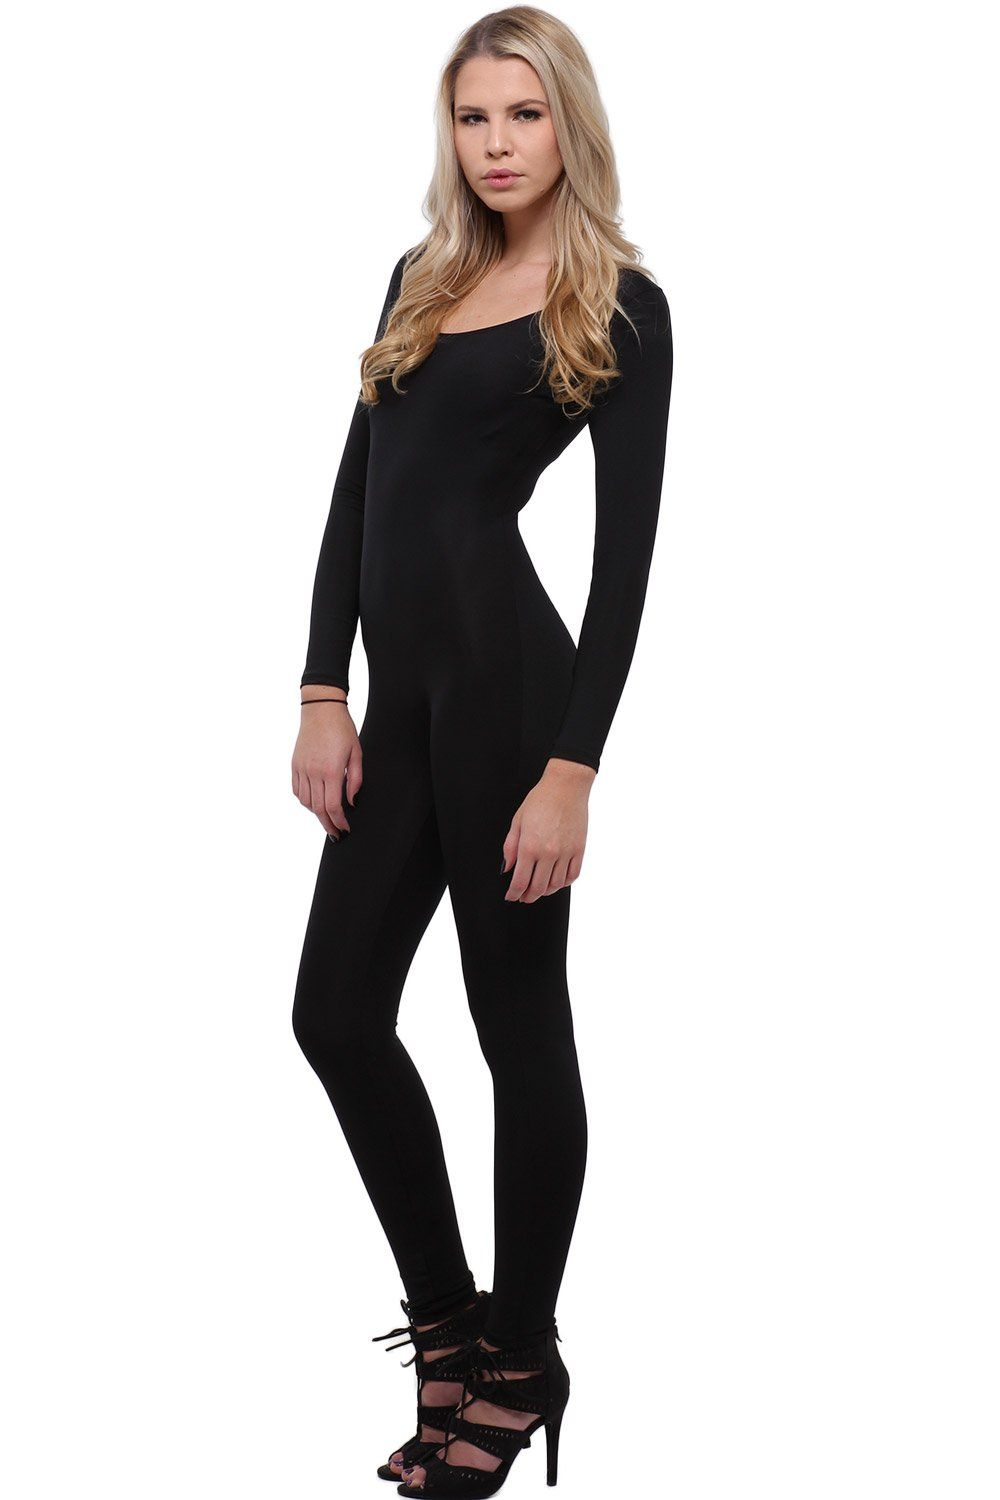 90ed7bdb29 World of Leggings Women s Premium Basic Full Nylon Spandex Jumpsuit - Black  -- Awesome products selected by Anna Churchill